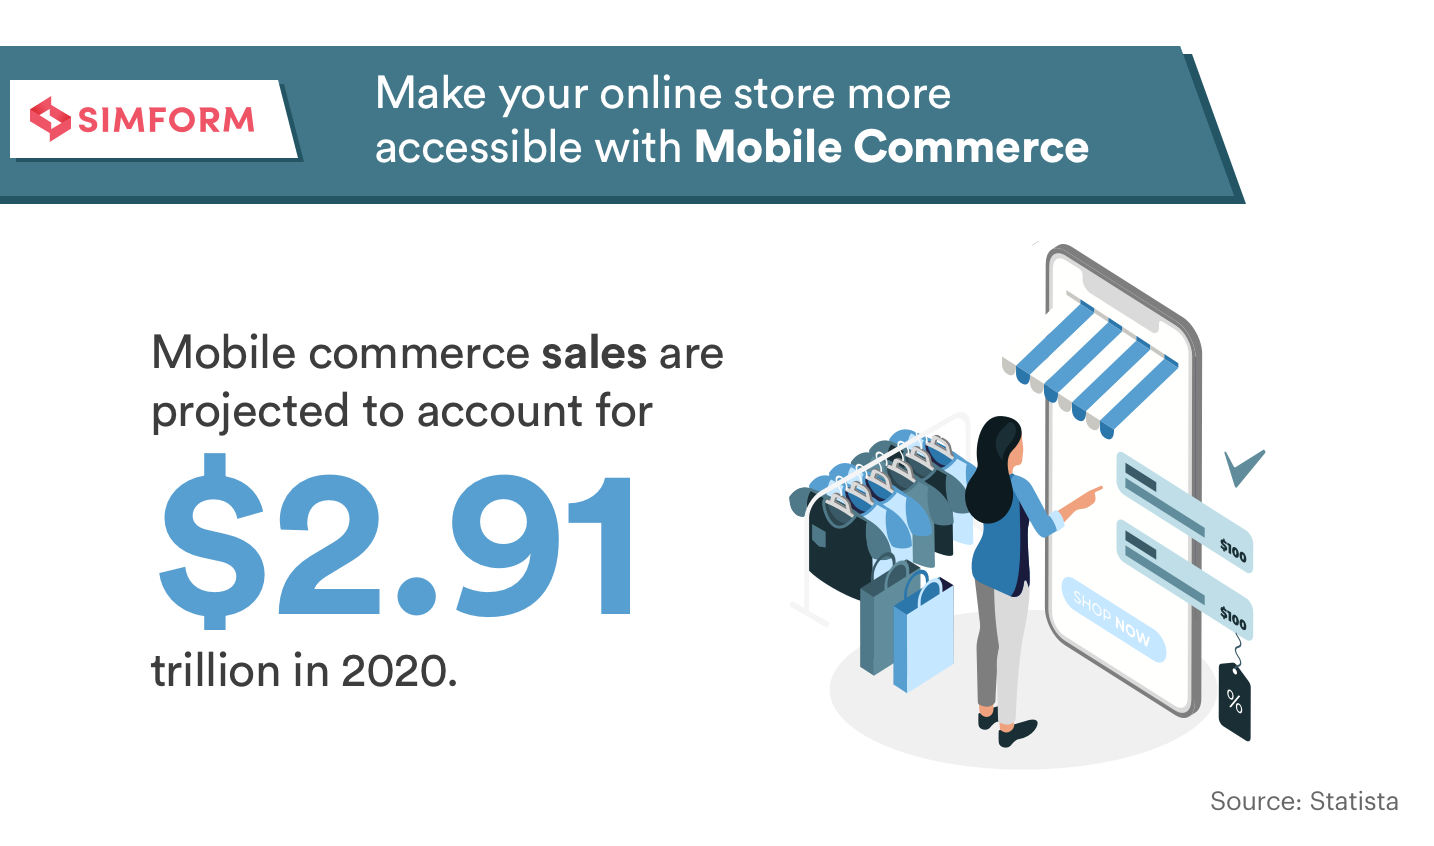 Make your online store more accessible with Mobile Commerce